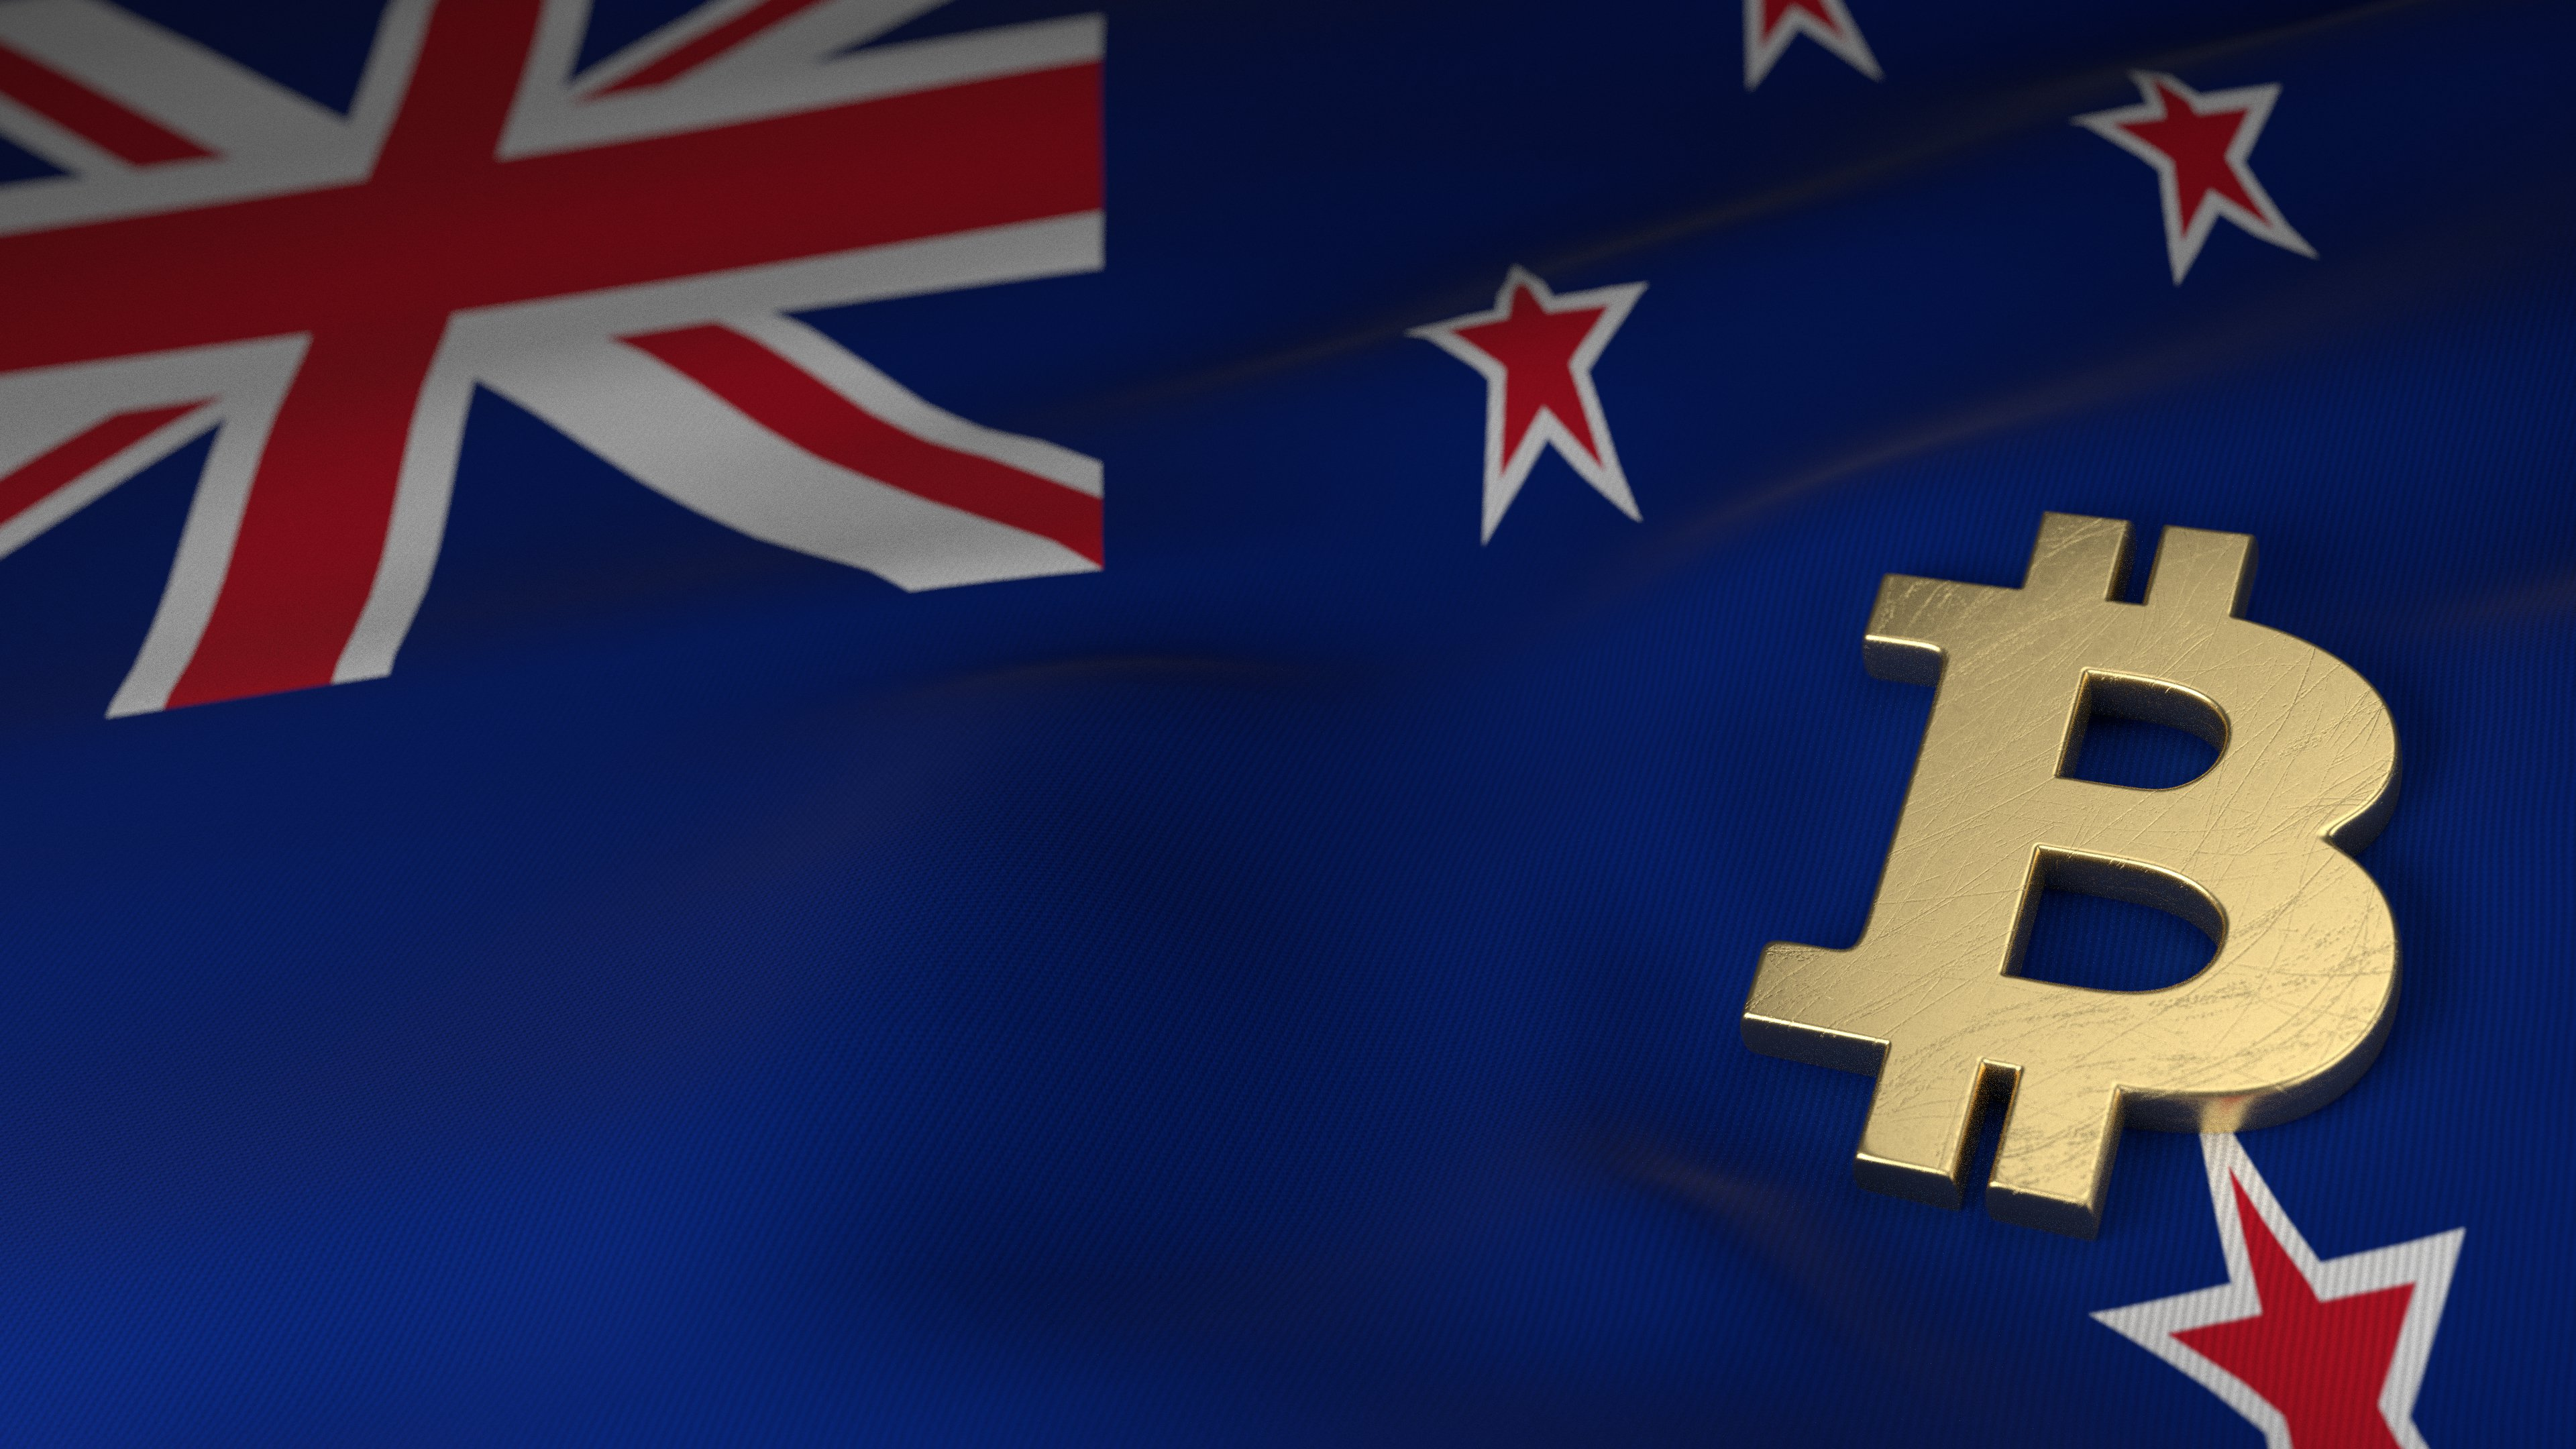 Cryptocurrencies And Tokens To Be Regarded As Securities In New Zealand As Per Regulator